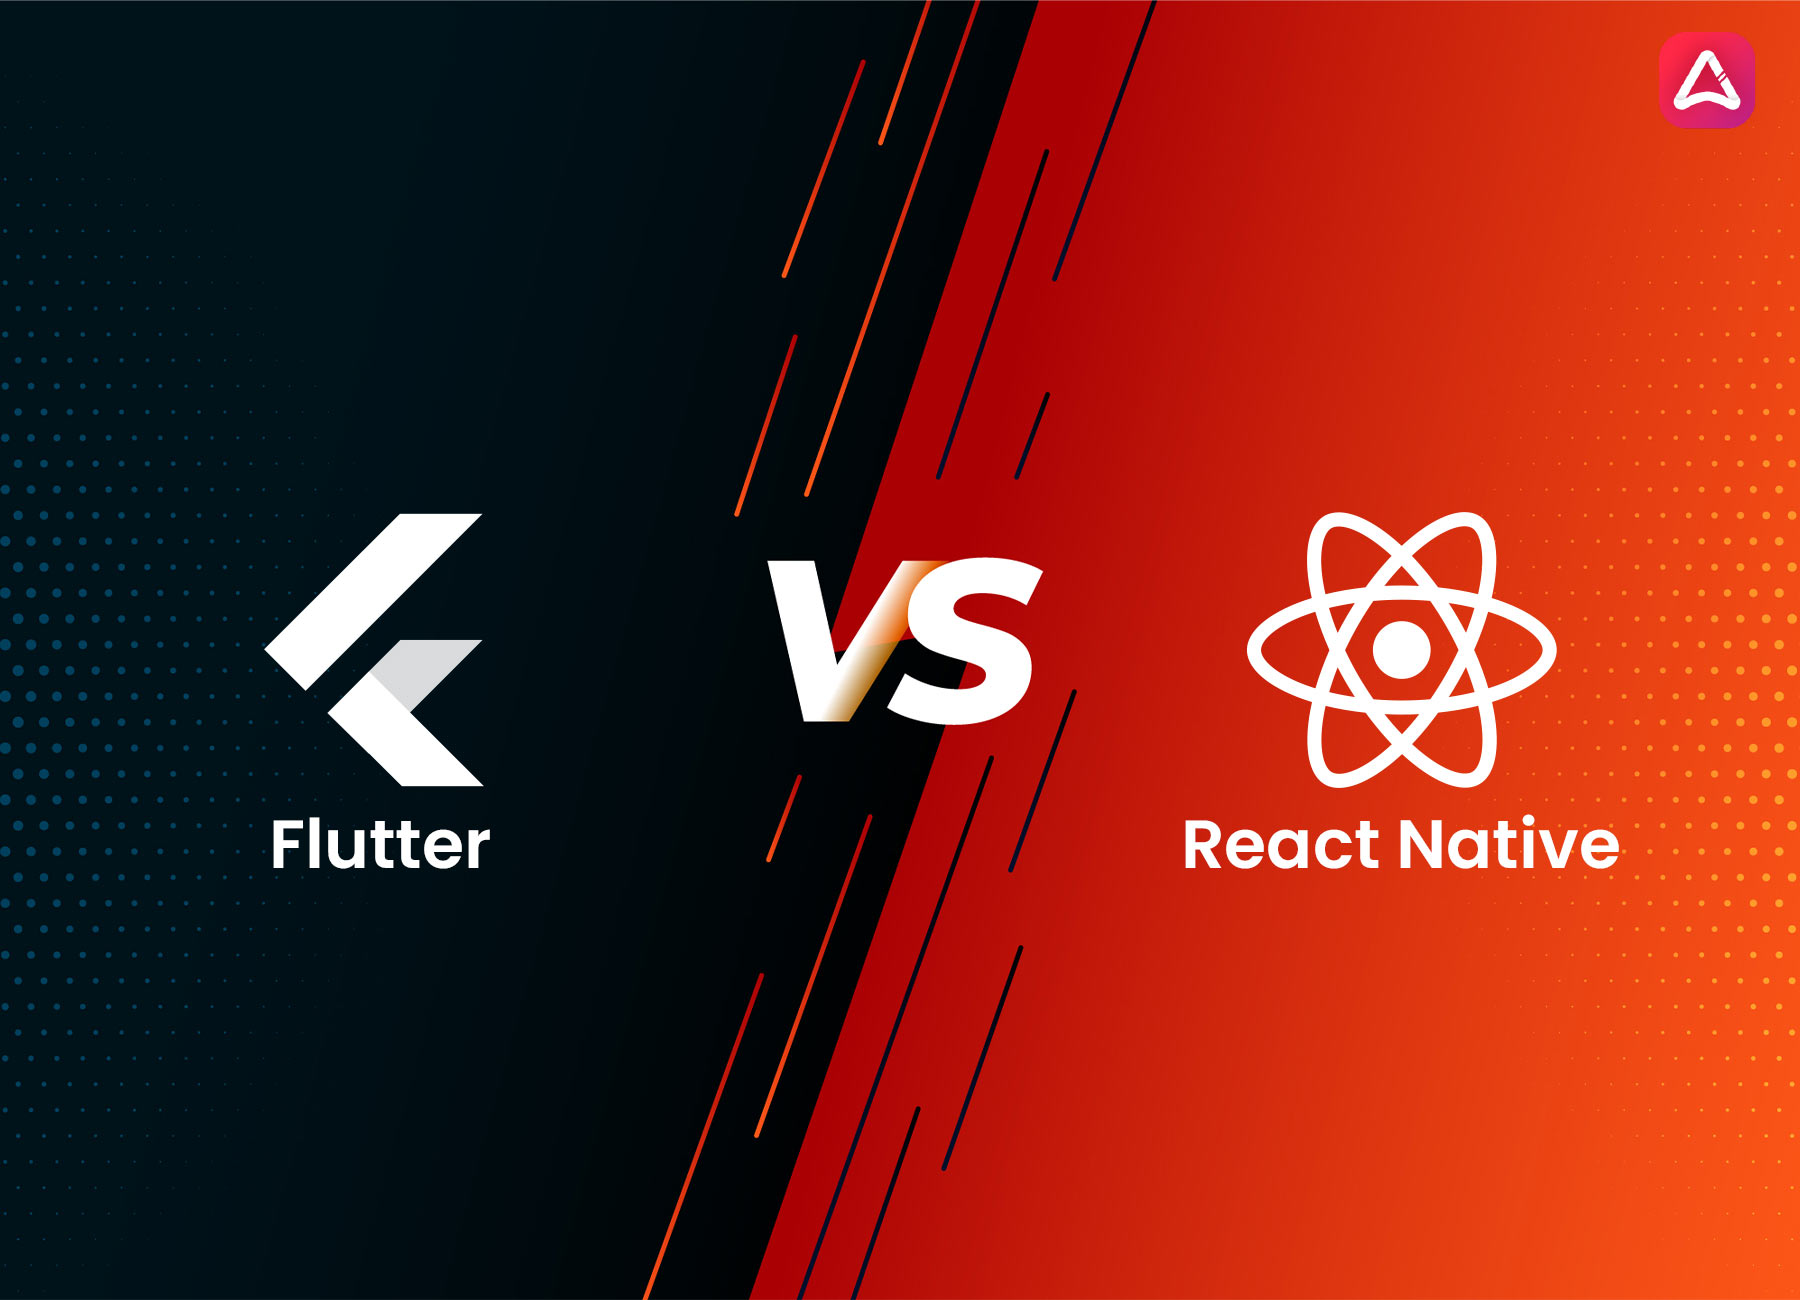 Flutter VS React Native - Who Won The Battle